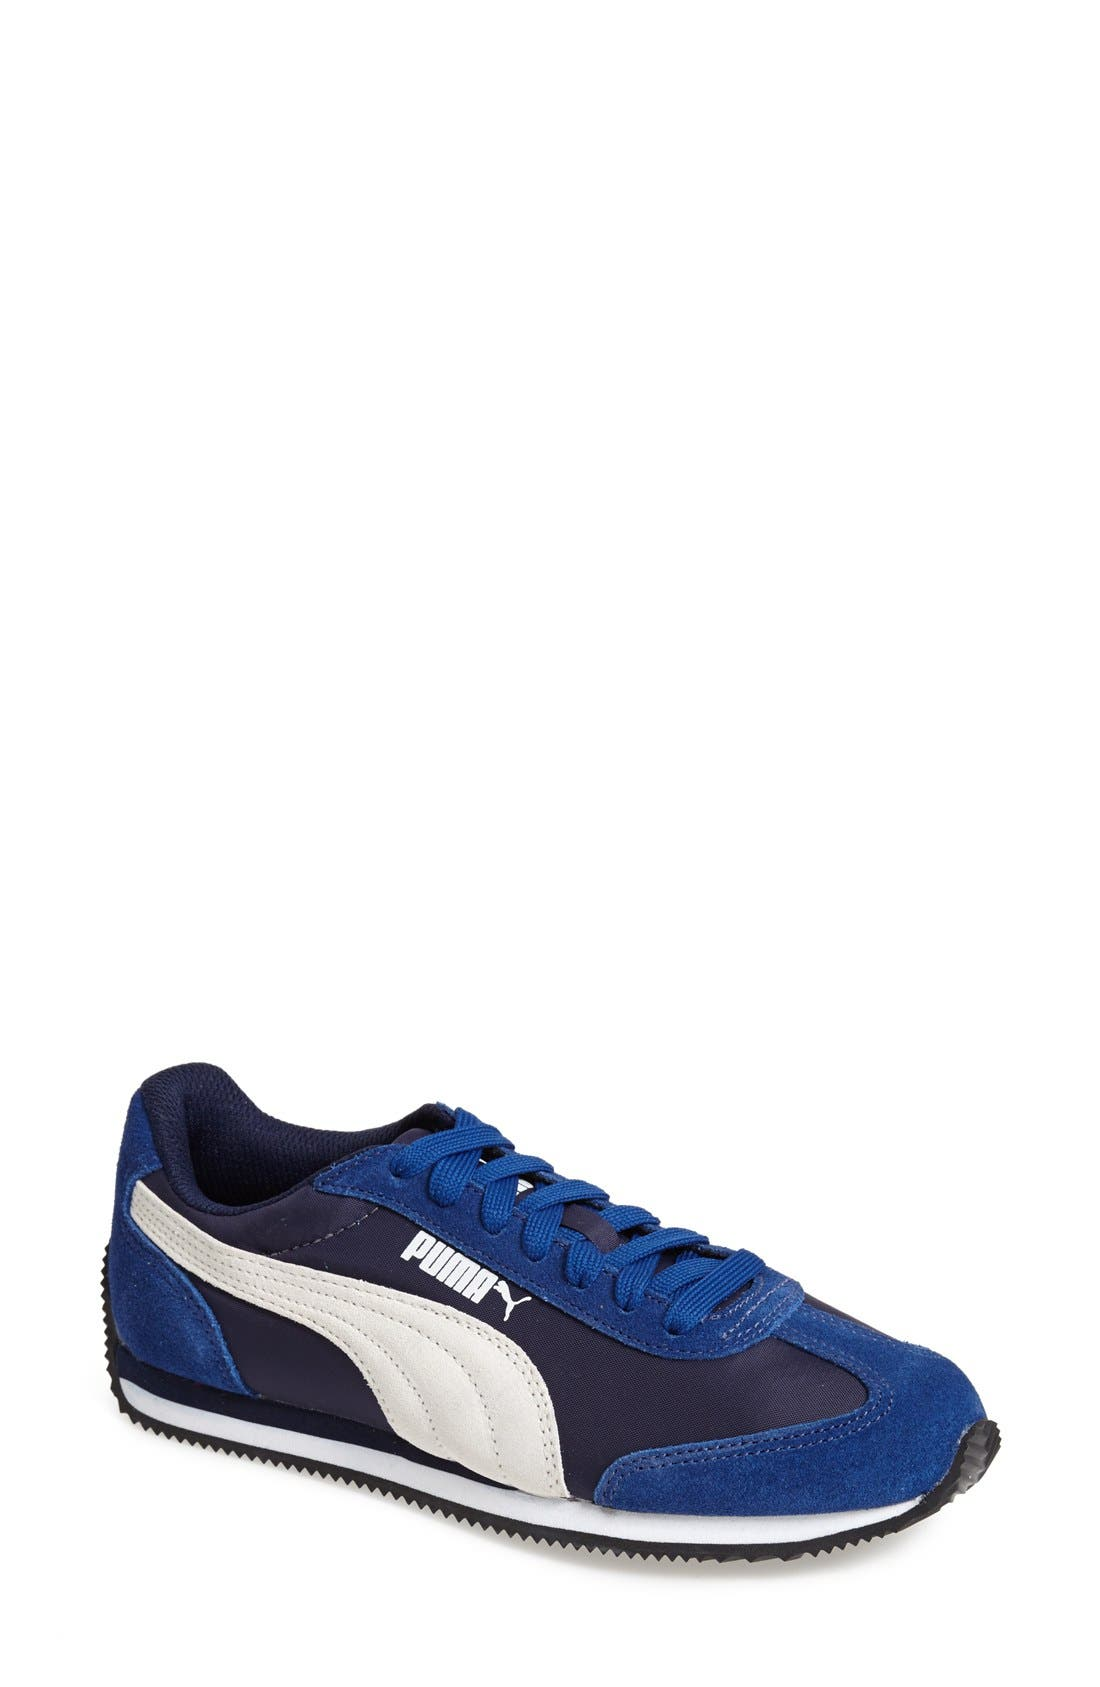 Main Image - PUMA 'Rio Speed NL' Sneaker (Women)